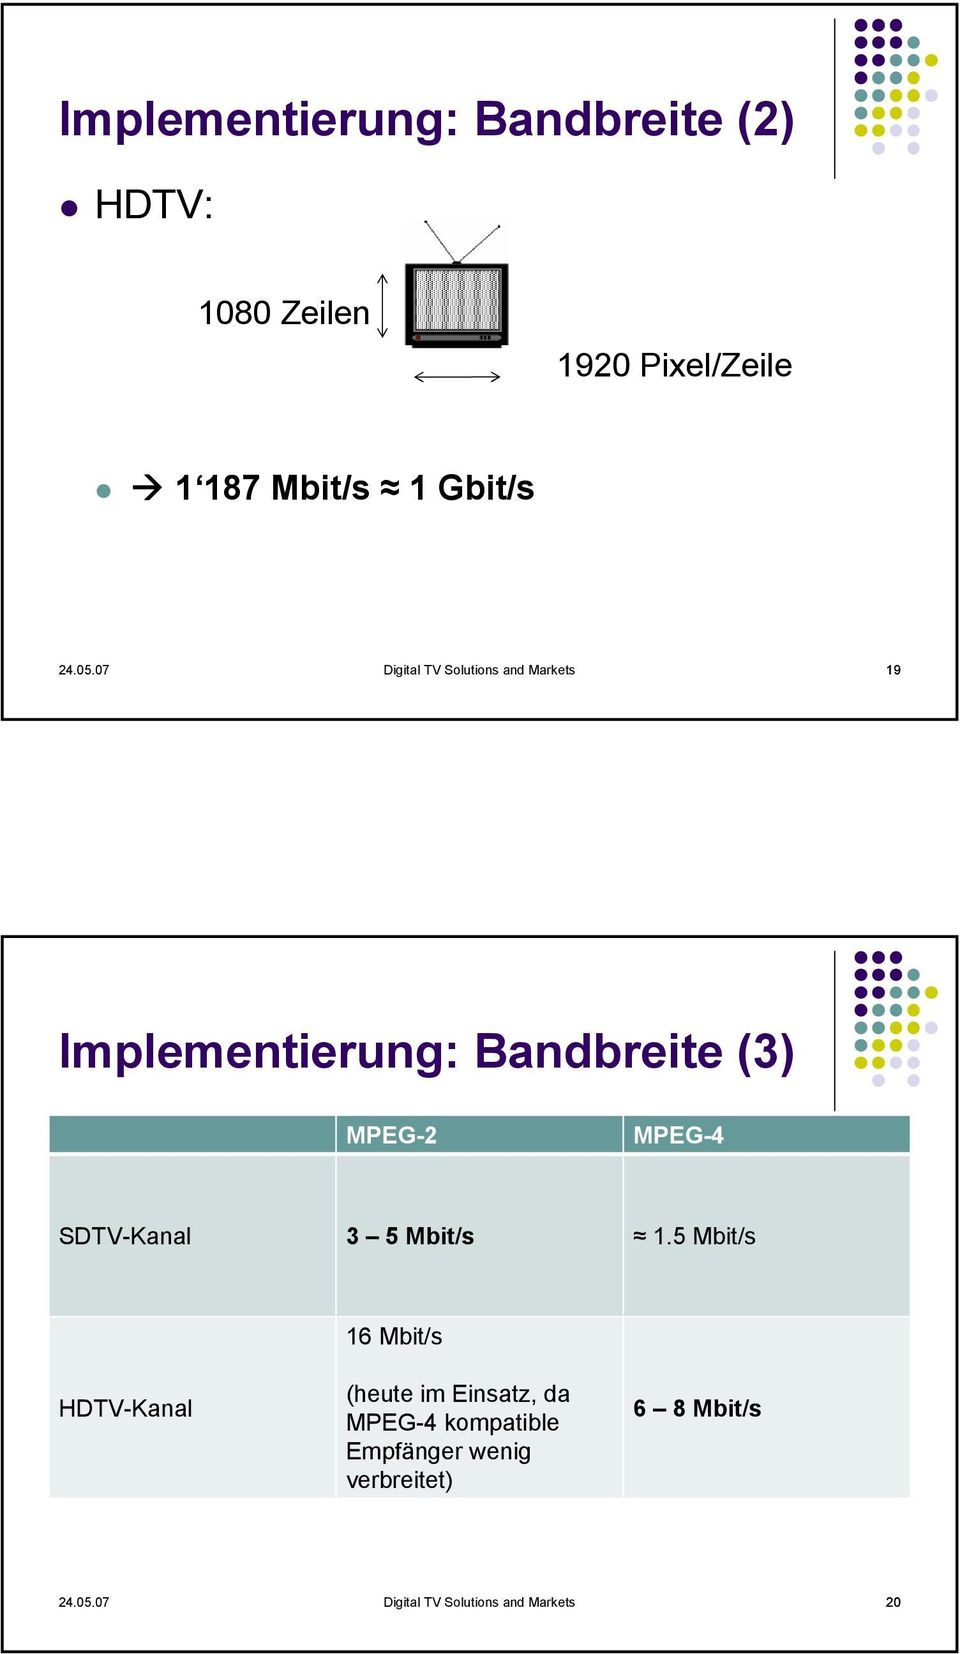 07 Digital TV Solutions and Markets 19 Implementierung: Bandbreite (3) MPEG-2 MPEG-4